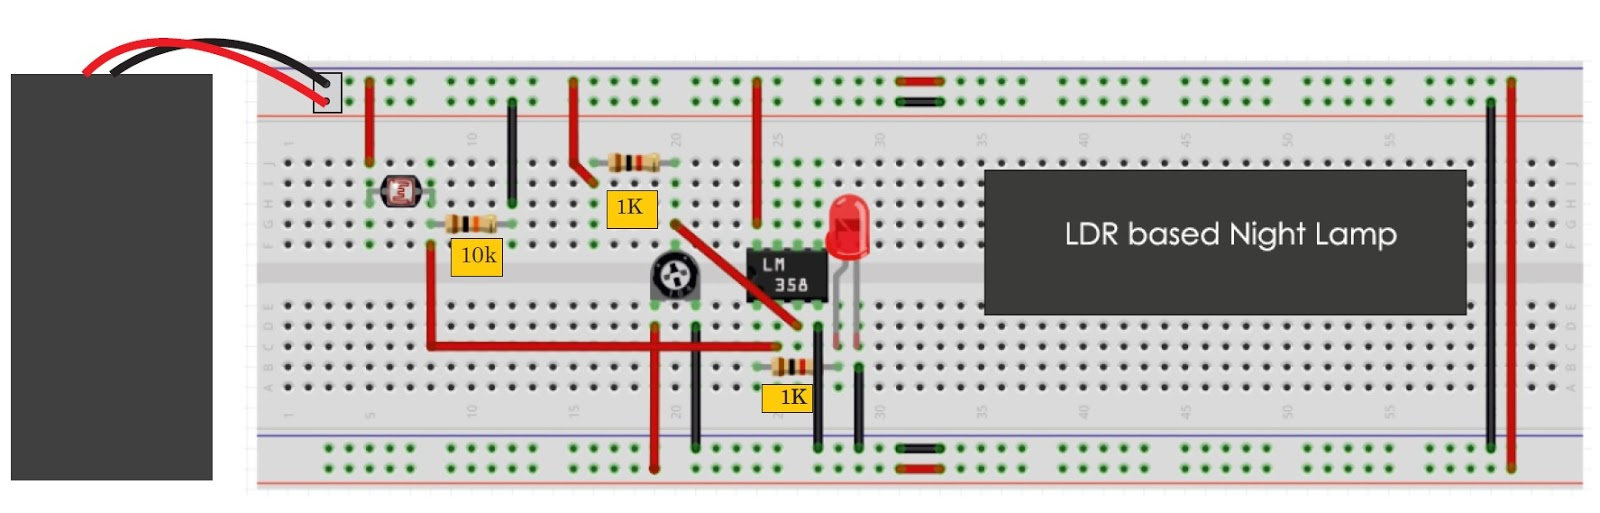 Basics Of Electronic Circuits and Projects : September 2016